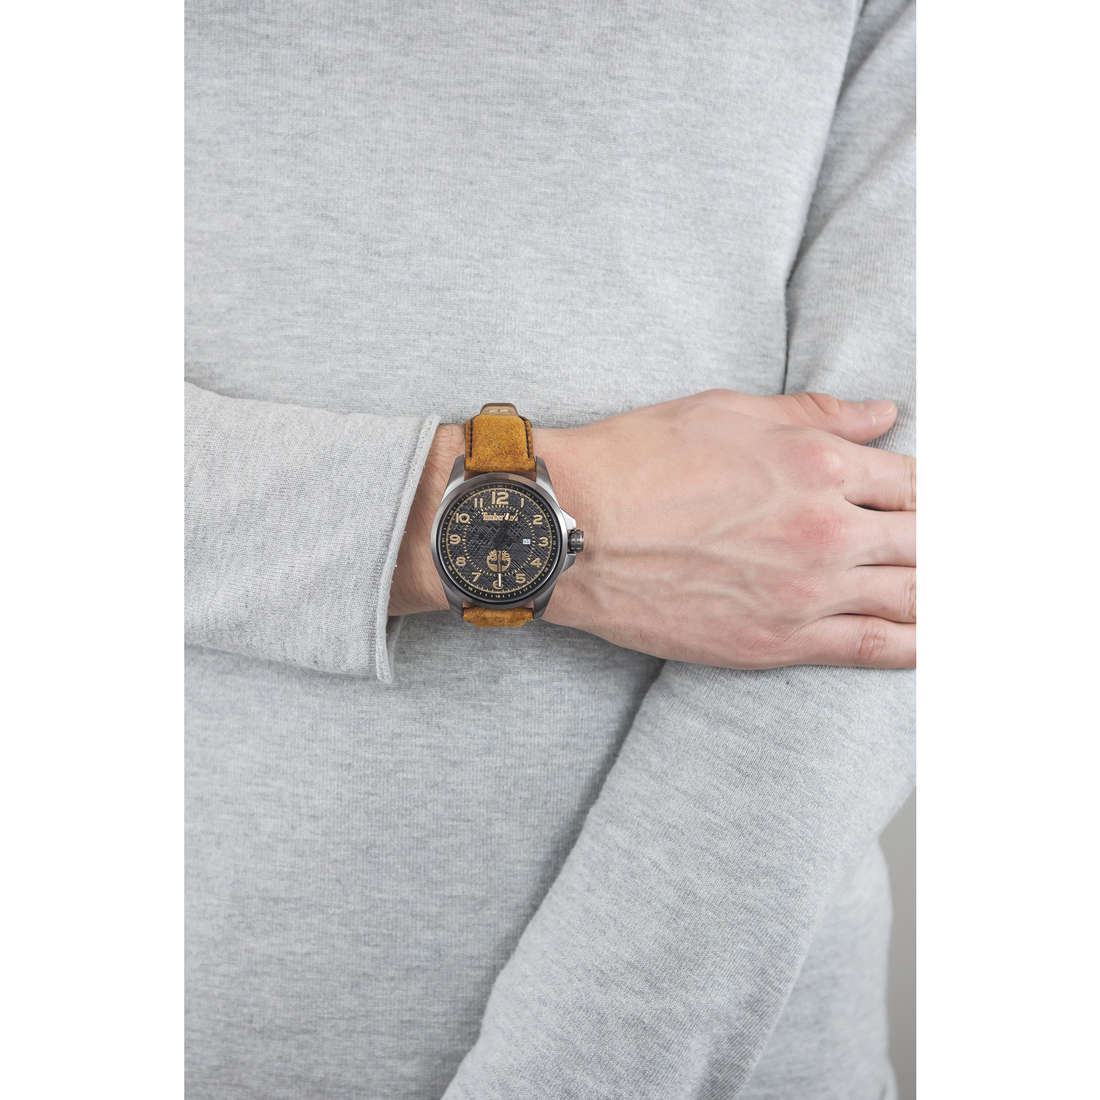 Timberland only time man TBL.14768JSU/02 indosso